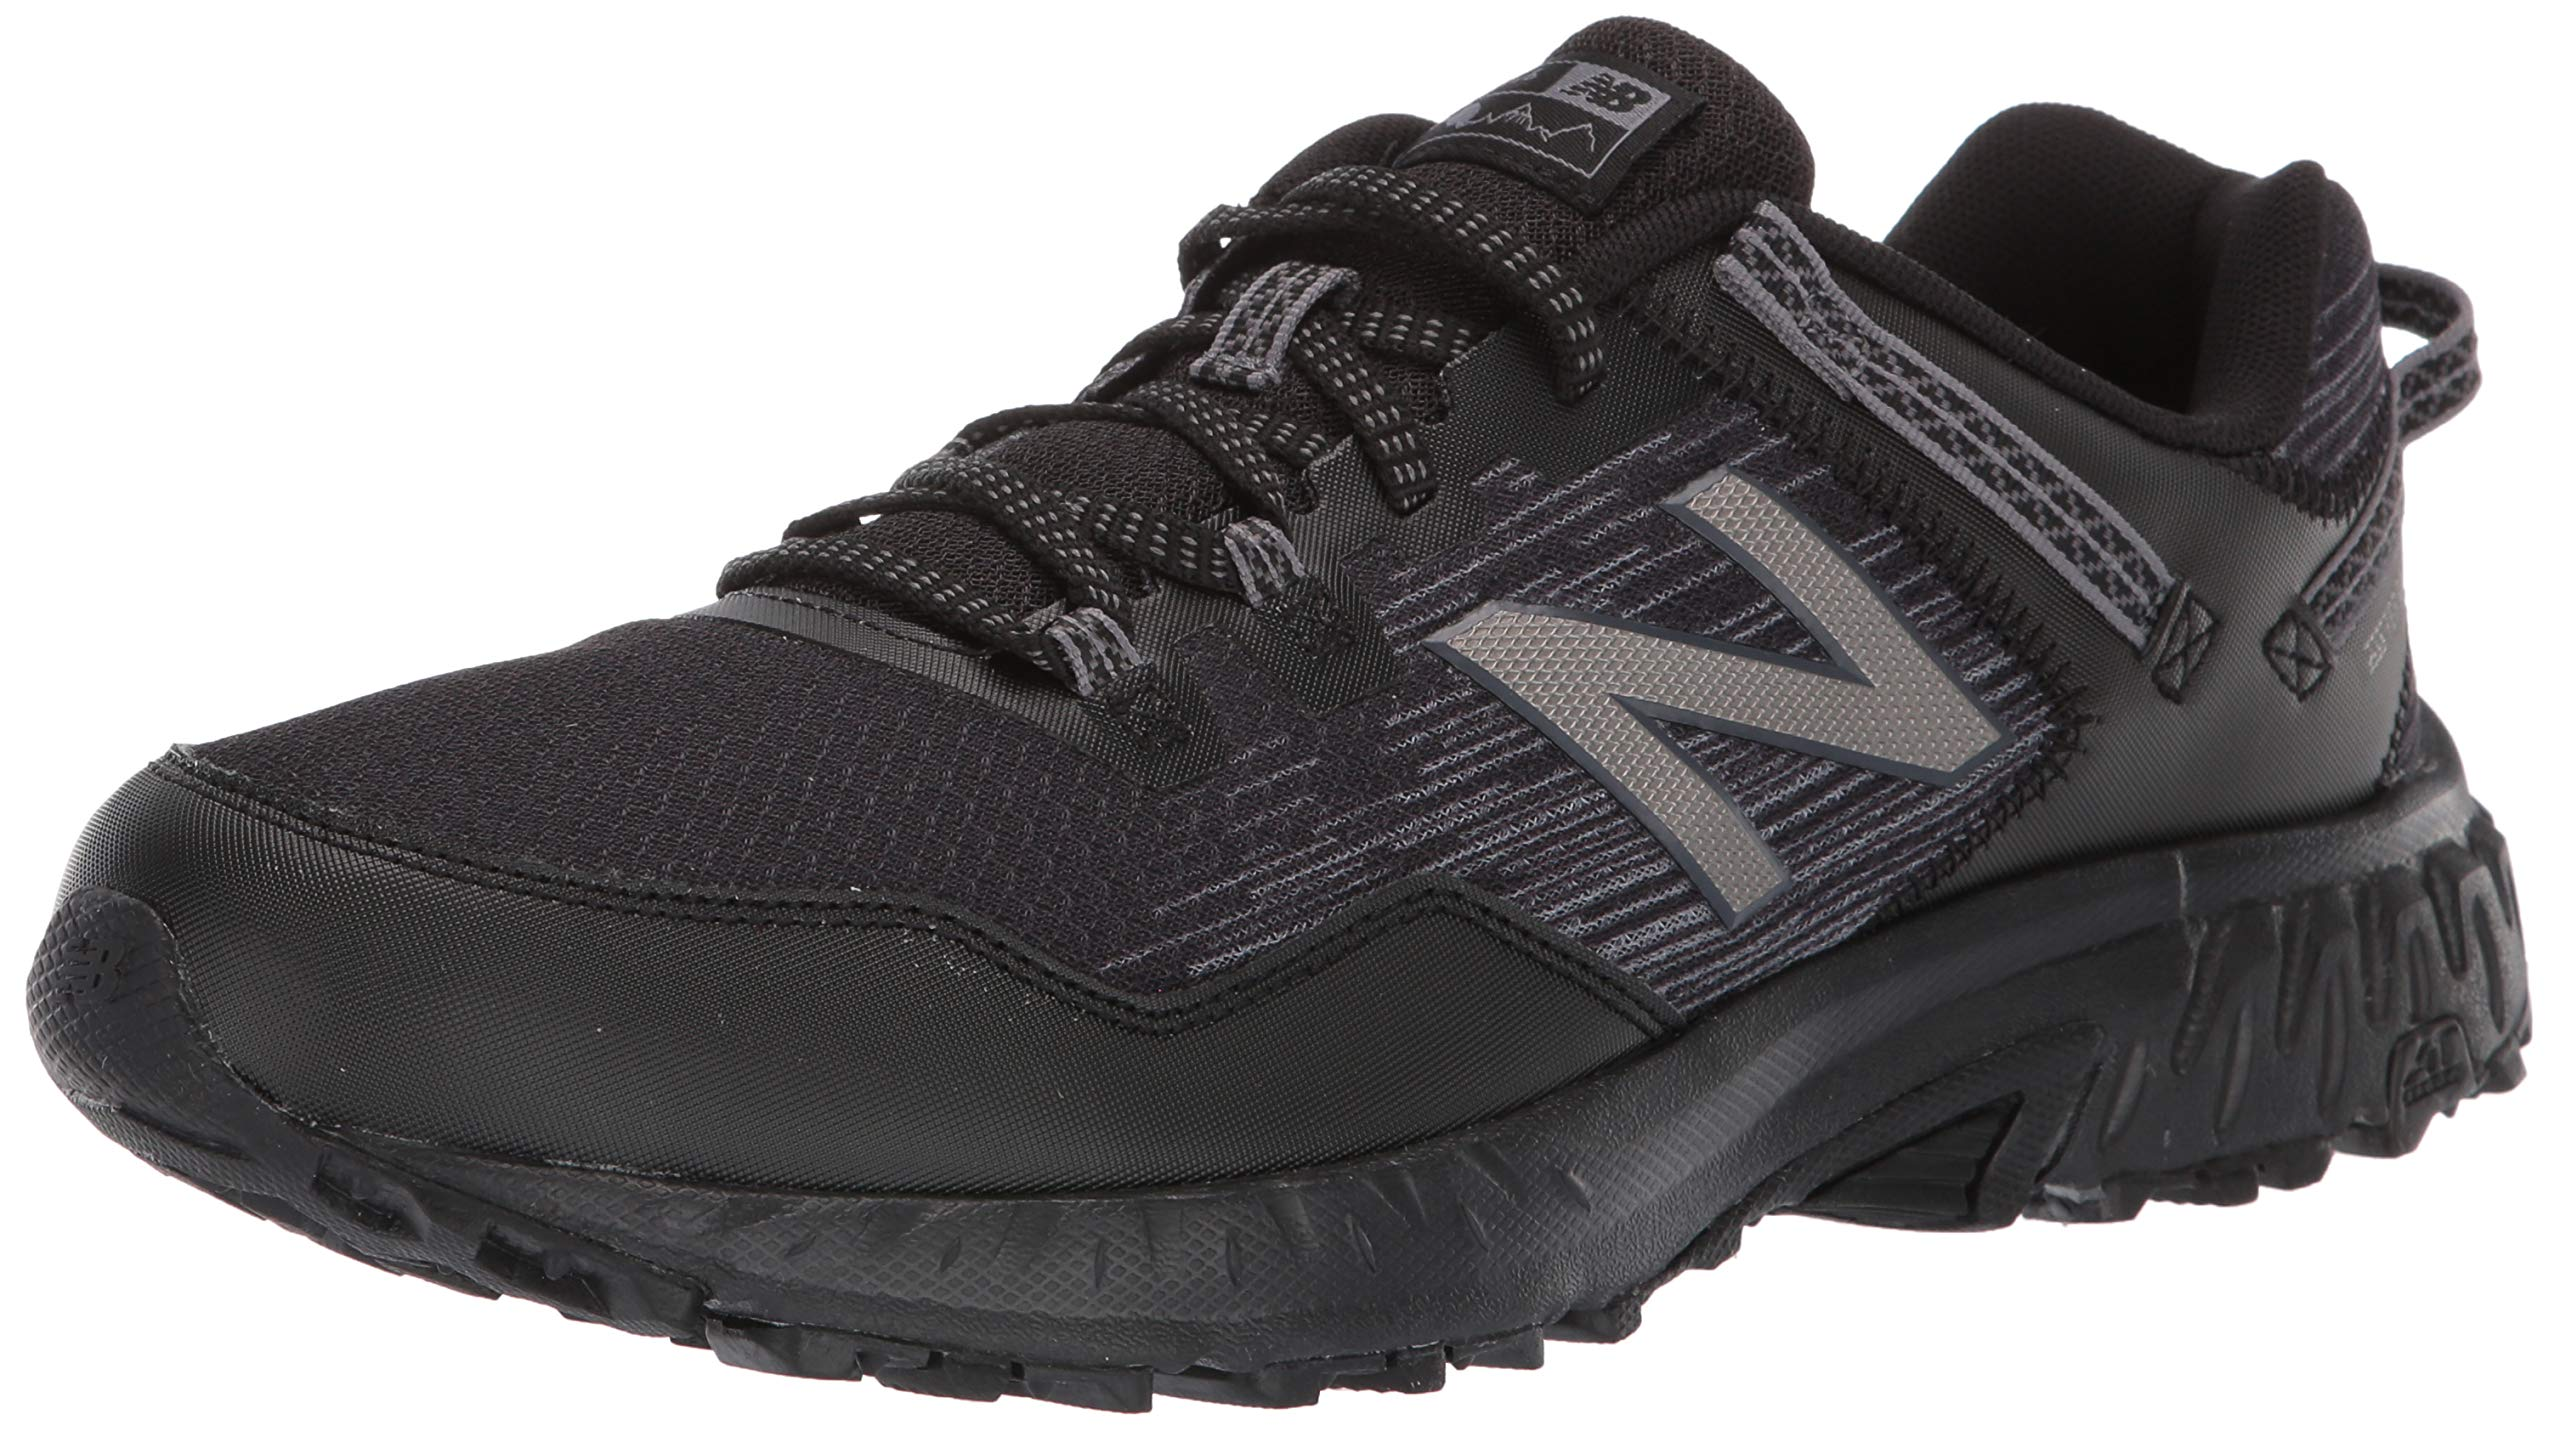 New Balance Men's 410v6 Cushioning Trail Running Shoe, Black/Castlerock/Dark Silver, 10.5 4E US by New Balance